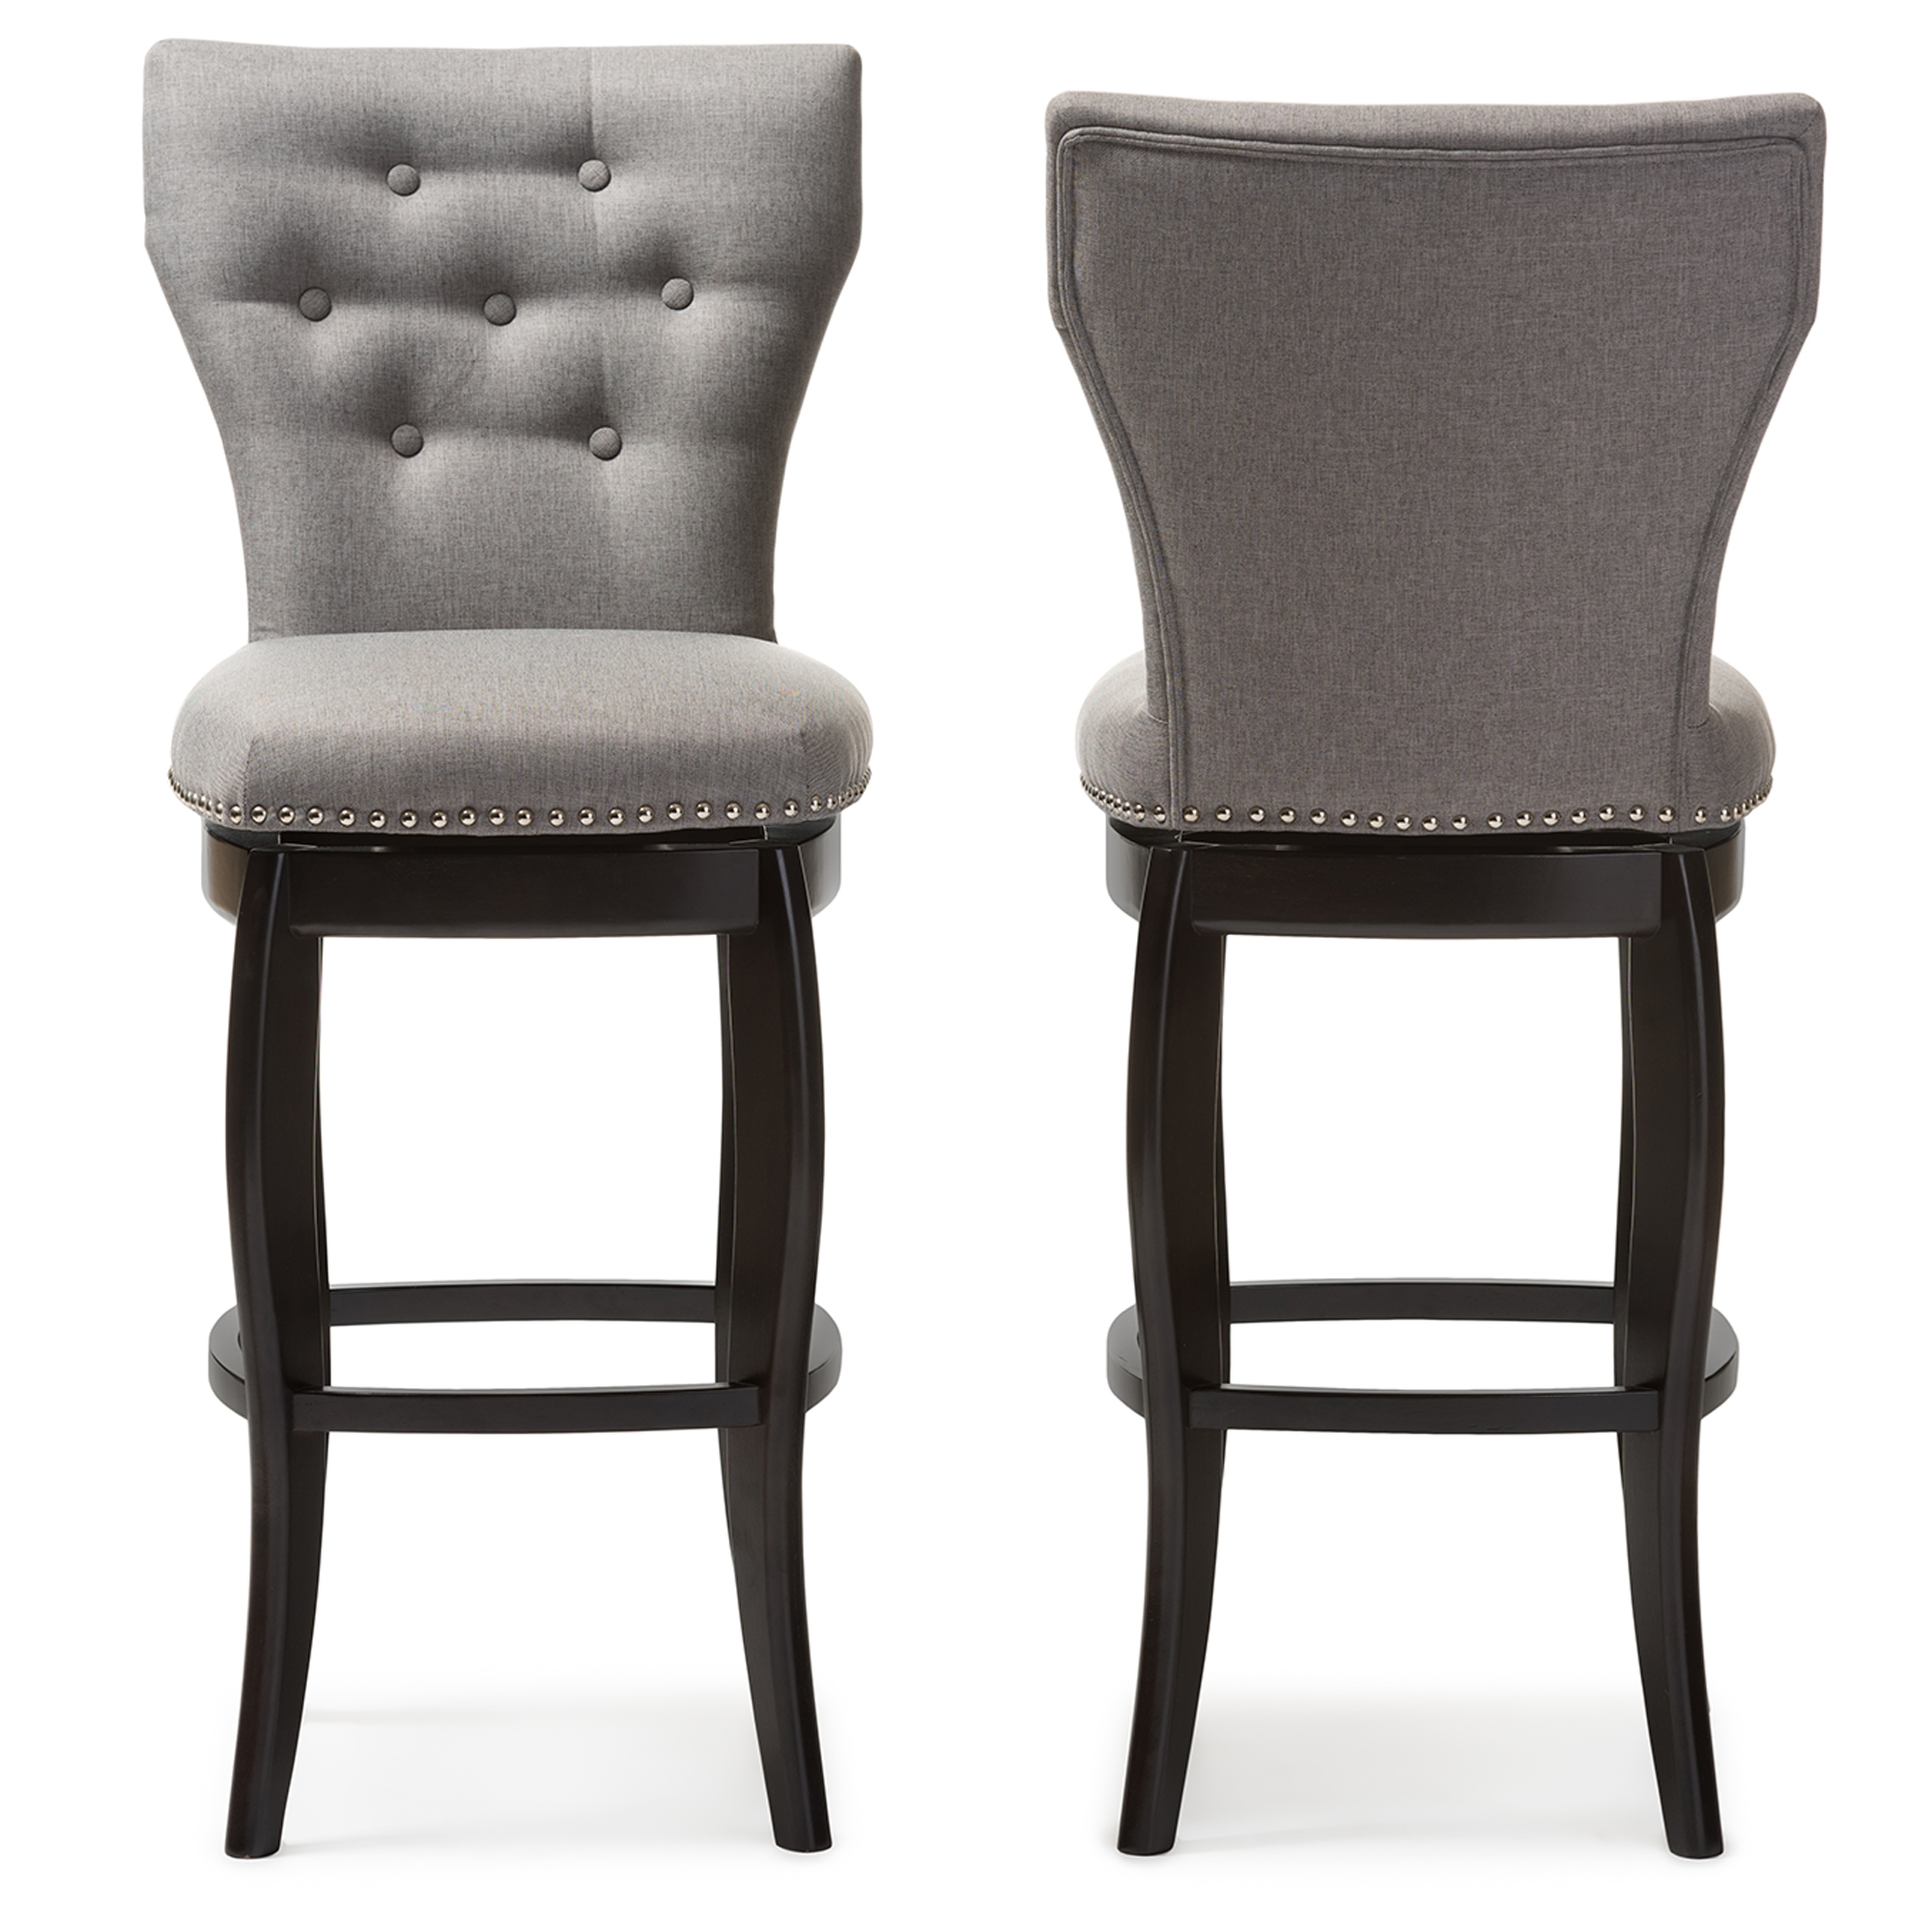 contemporary bar furniture. Baxton Studio Leonice Modern And Contemporary Grey Fabric Upholstered Button-tufted 29-Inch Swivel Bar Furniture